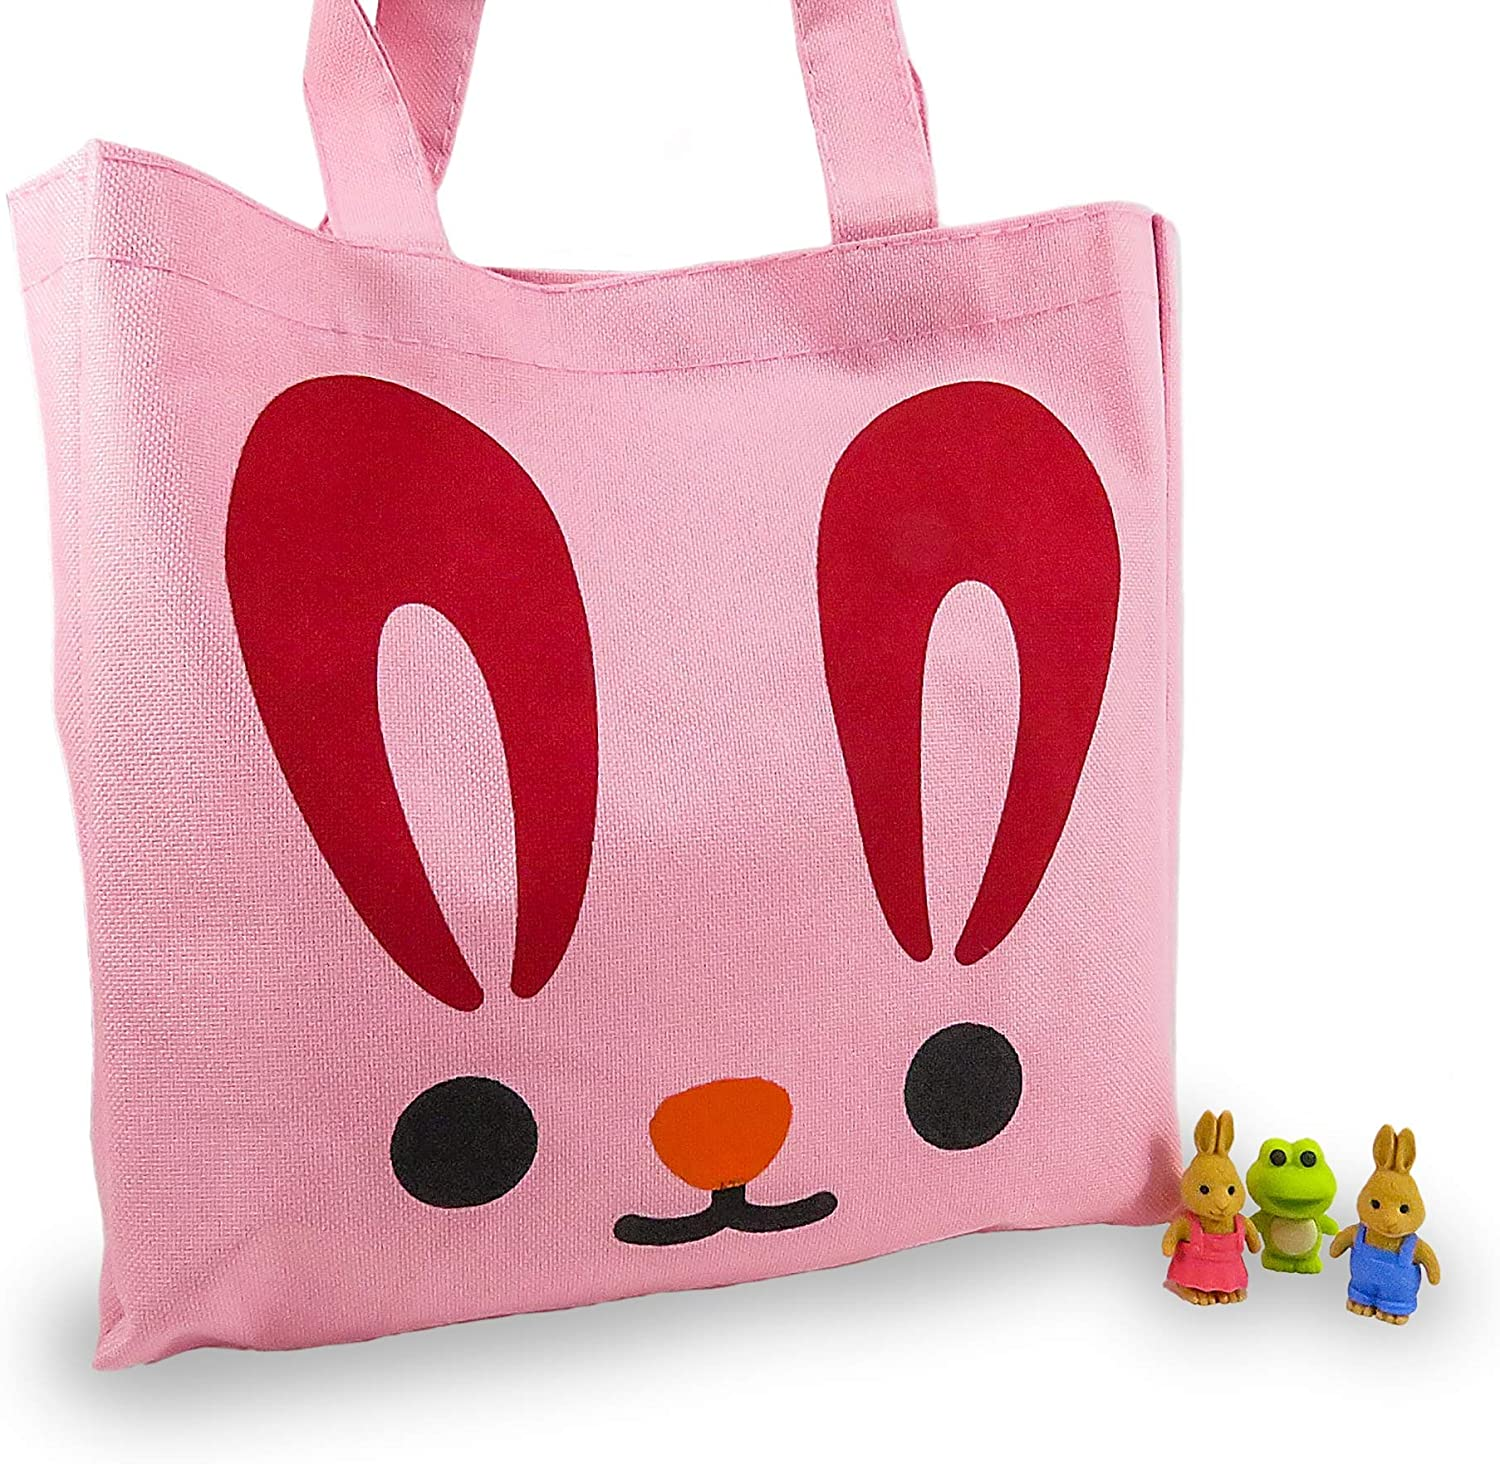 Mixed Rabbit Tote Bag Purse for Girls 10.75 x 10.5 Inches Pink and 3 Mini Puzzle Erasers Rabbits and Frog - Cute Animals Are Actually Erasers (4 Piece Set)